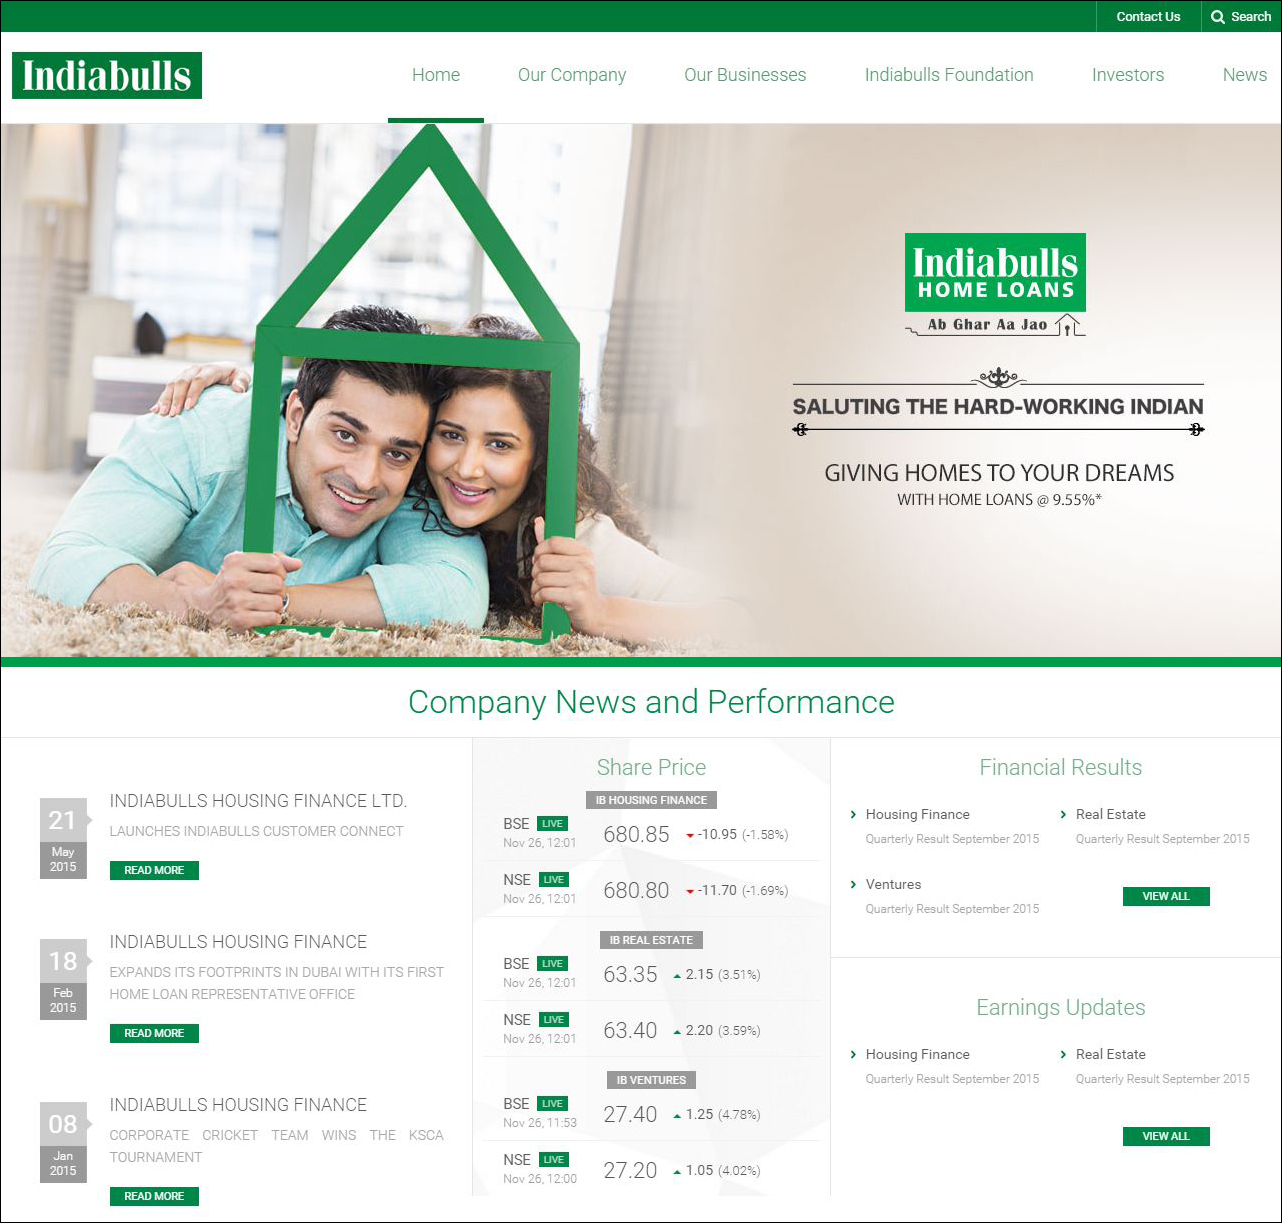 Indiabulls Group